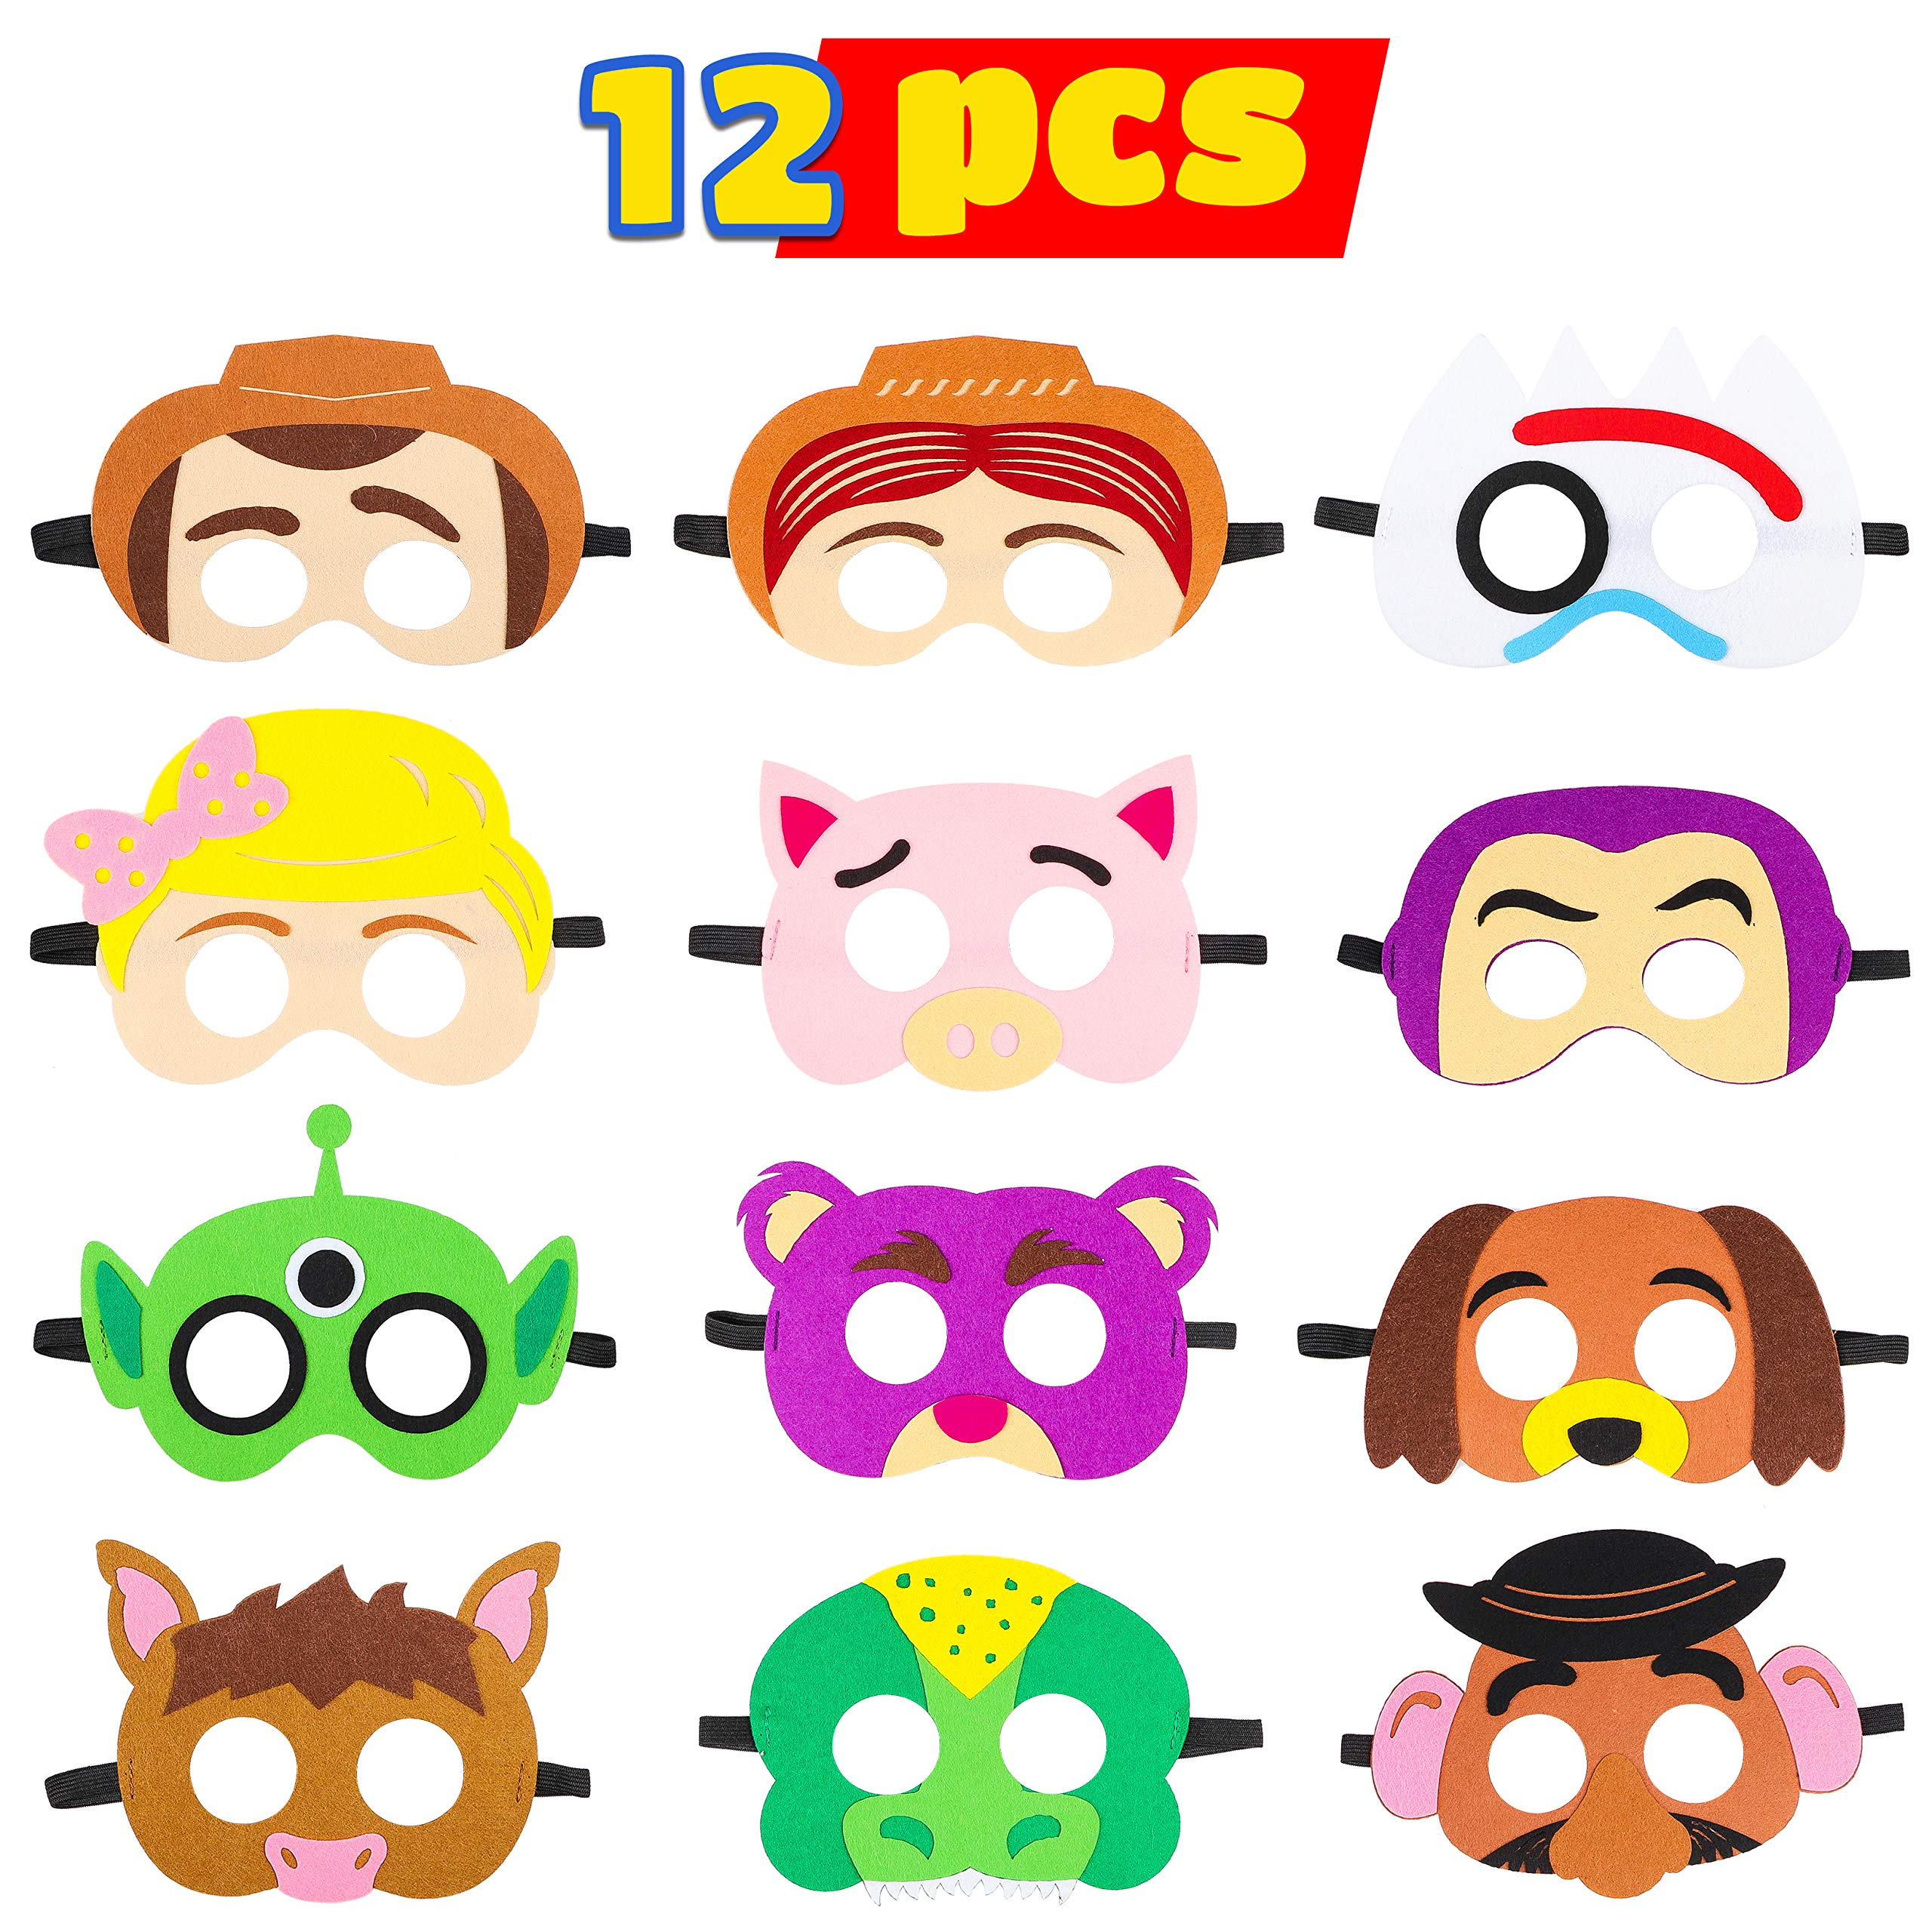 MALLMALL6 Toy 4th Masks Birthday Party Supplies Toys 4th Adventure Party Favors Dress Up Costume Mask Include Woody Buzz Lightyear Bo Peep Bullseye Slinky Dog Jessie Rex for Kids by MALLMALL6